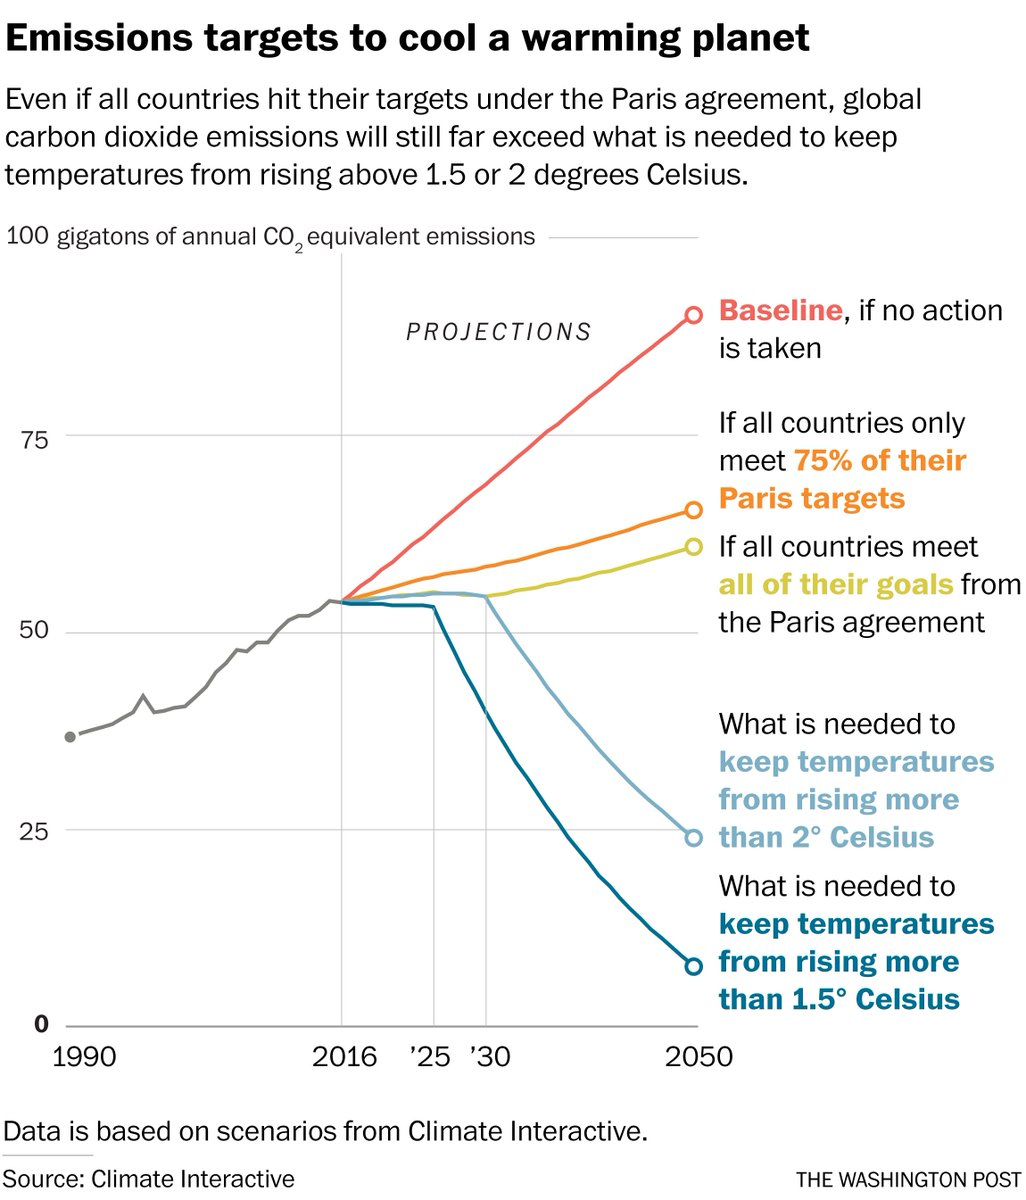 Two years later, the euphoria of the Paris climate agreement is colliding with the reality of the present: https://t.co/EQzs3p5IGP